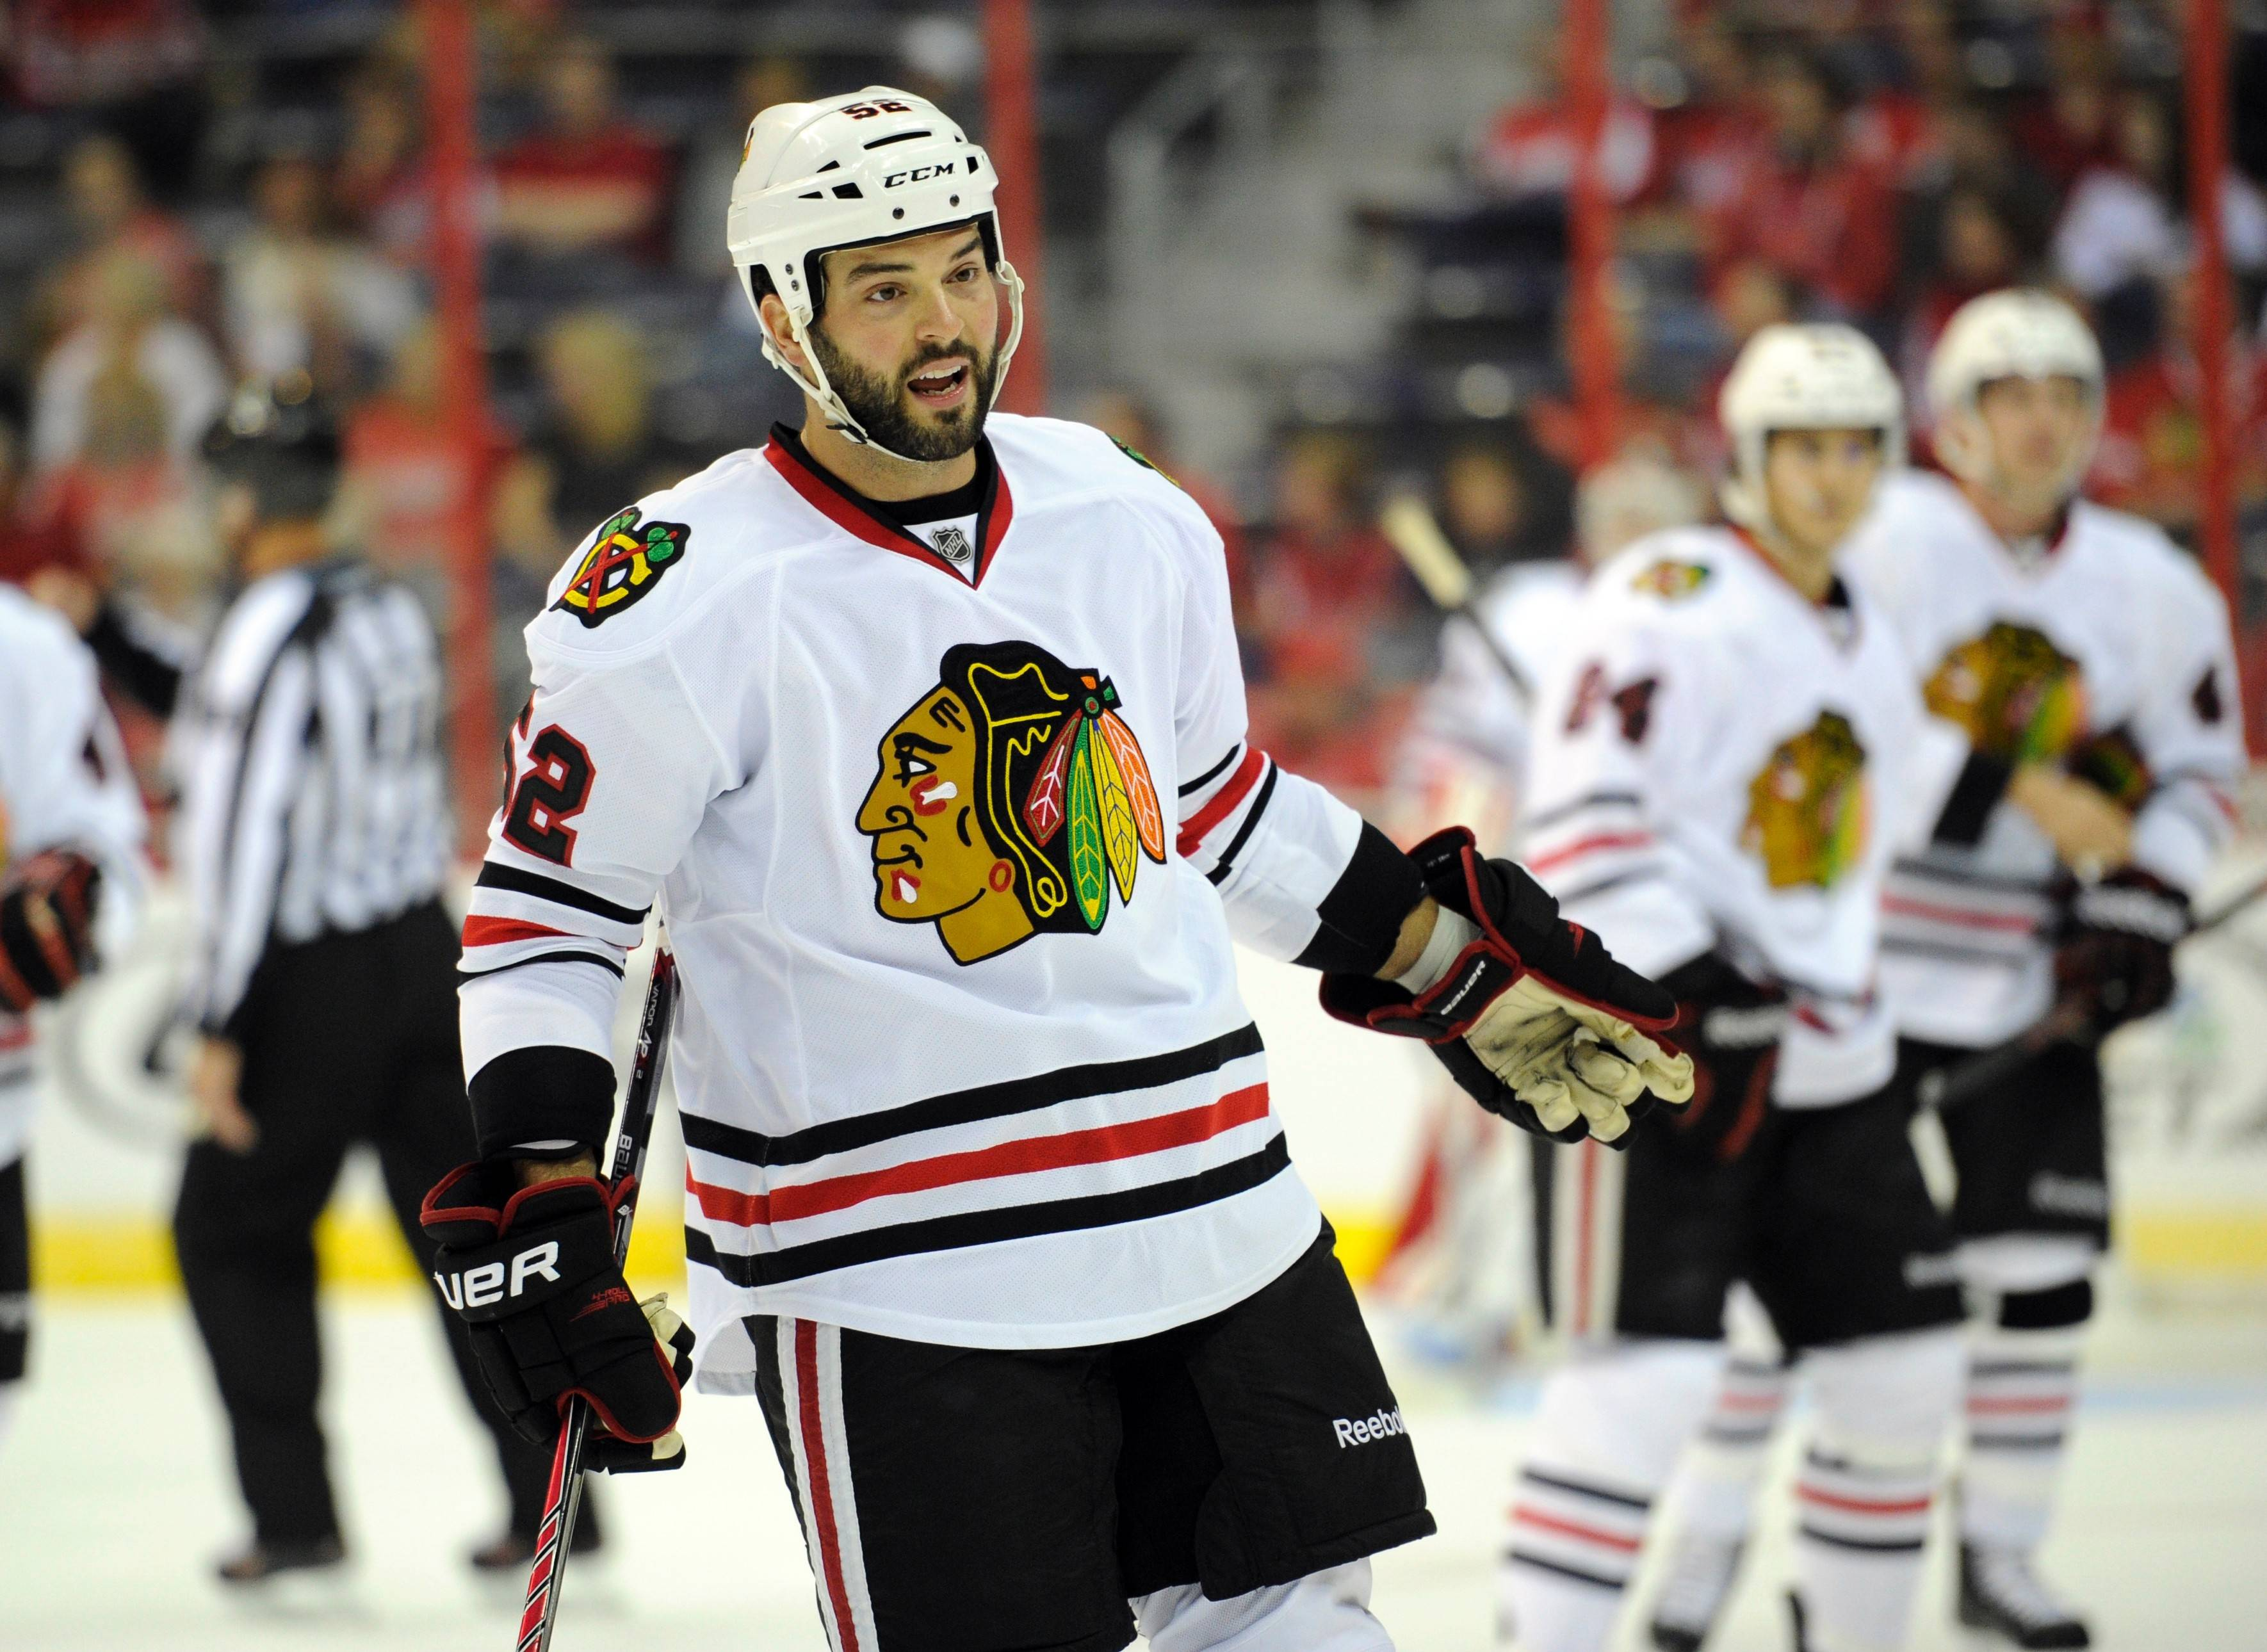 The Blackhawks have traded forward Brandon Bollig to the Calgary Flames for a third-round selection in the NHL draft. Bollig agreed to a three-year contract extension in March. He had seven goals and seven assists while playing in 82 games this season, and then had an assist in 15 playoff games. The Blackhawks used the draft pick, No. 83 overall, to take forward Matheson Iacopelli